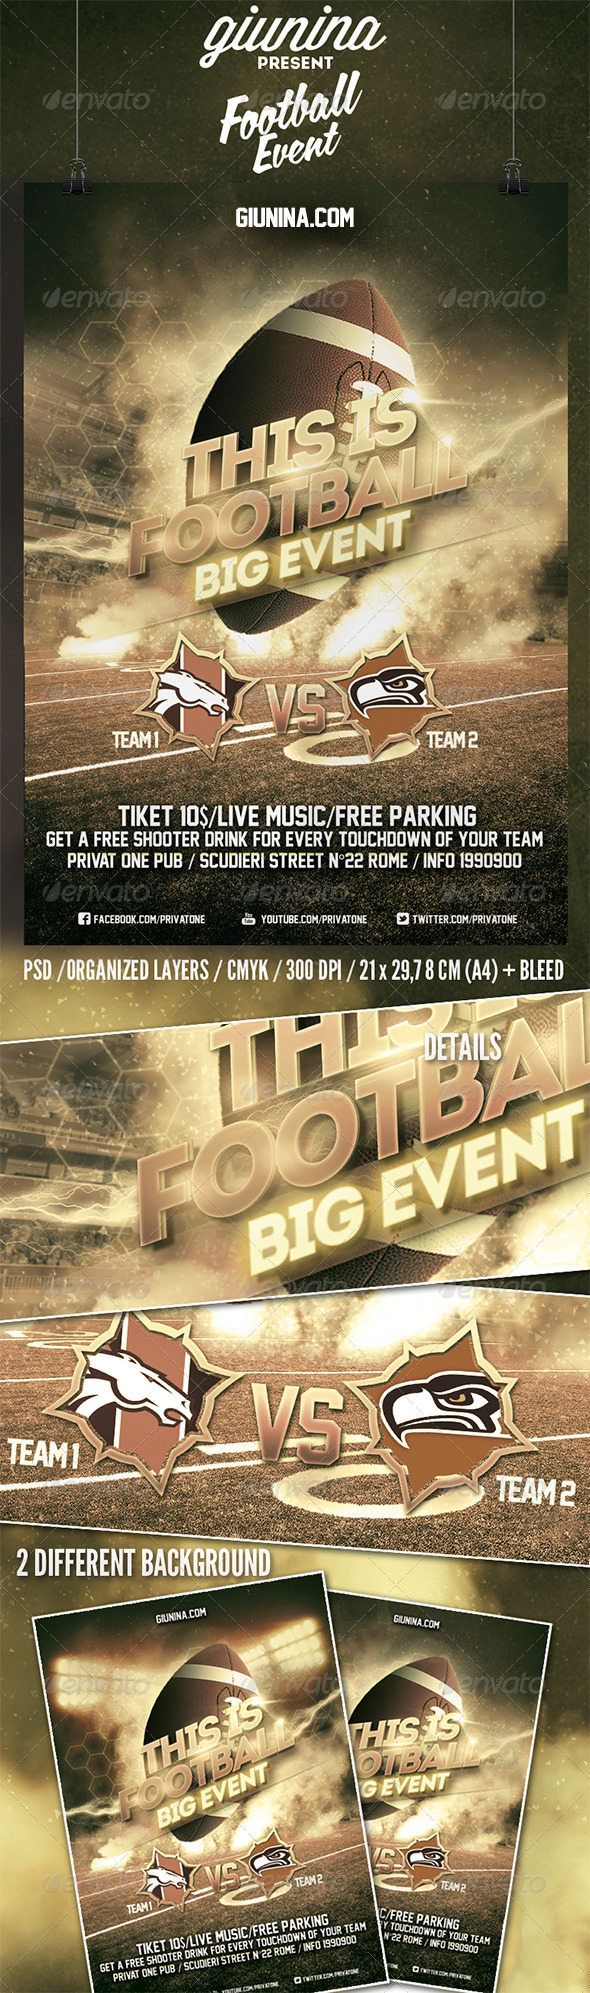 Football Event Flyer/Poster - Events Flyers